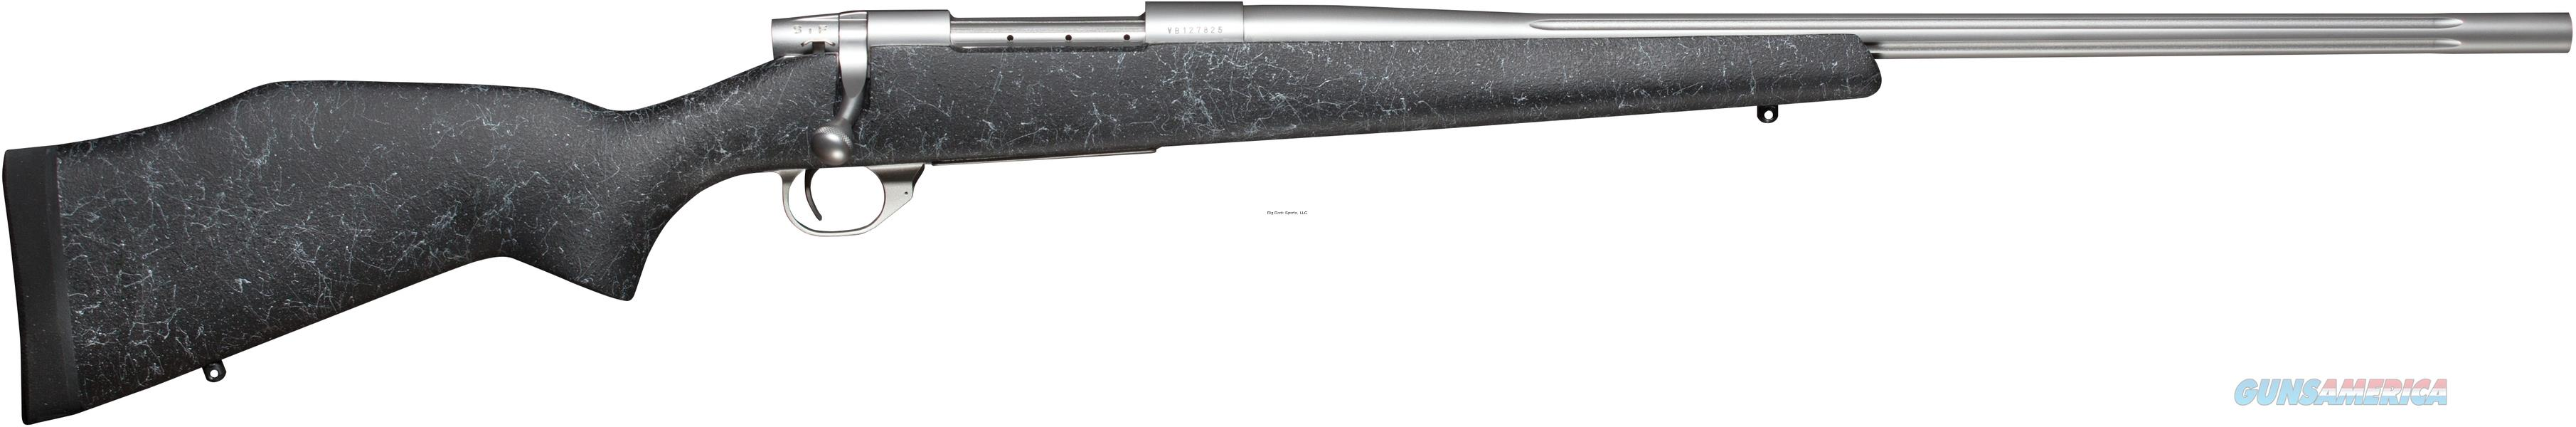 Weatherby Vanguard 257Wby 26 Accuguard Ss #3 Fluted VCC257WR6O  Guns > Rifles > W Misc Rifles